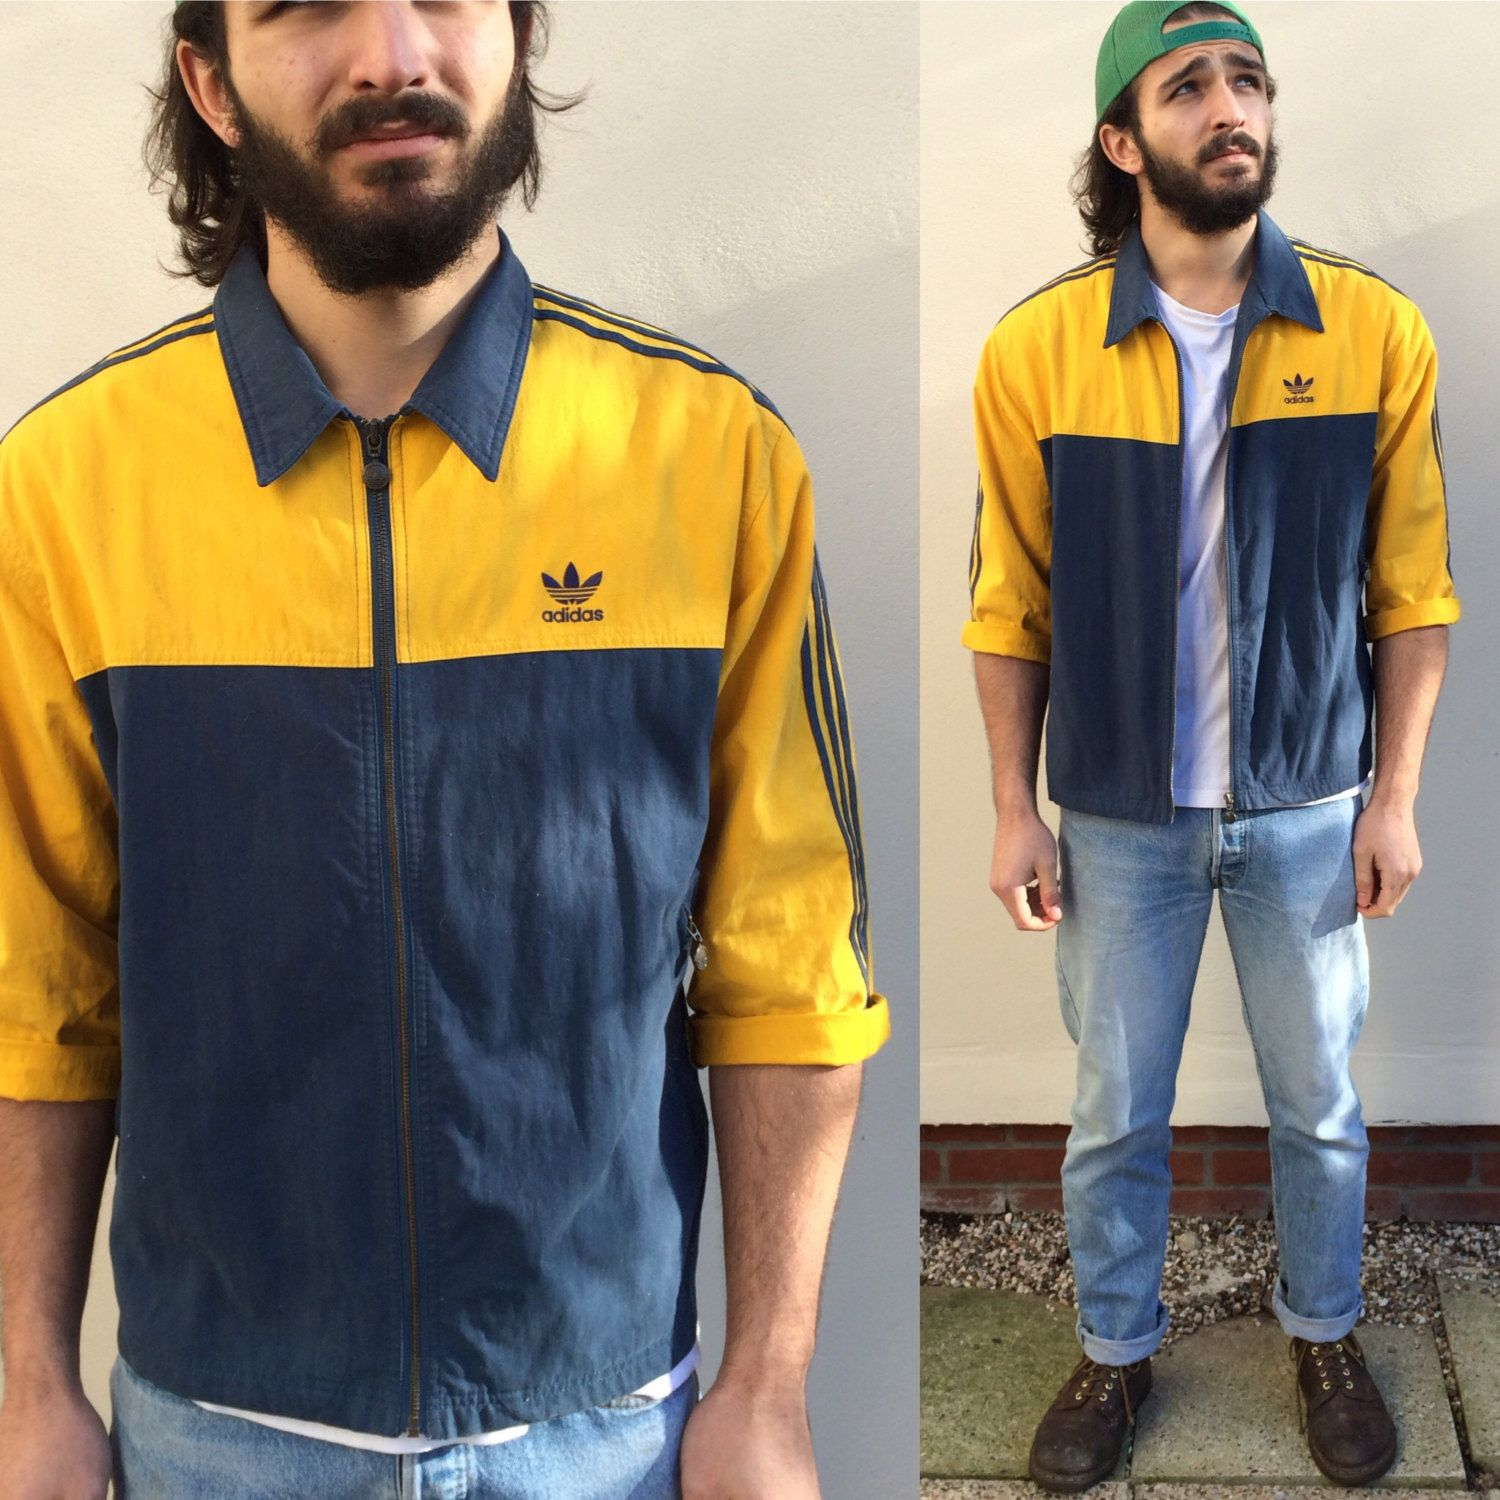 Vintage Adidas Zip Tracksuit Top Jacket. Cotton Rugby